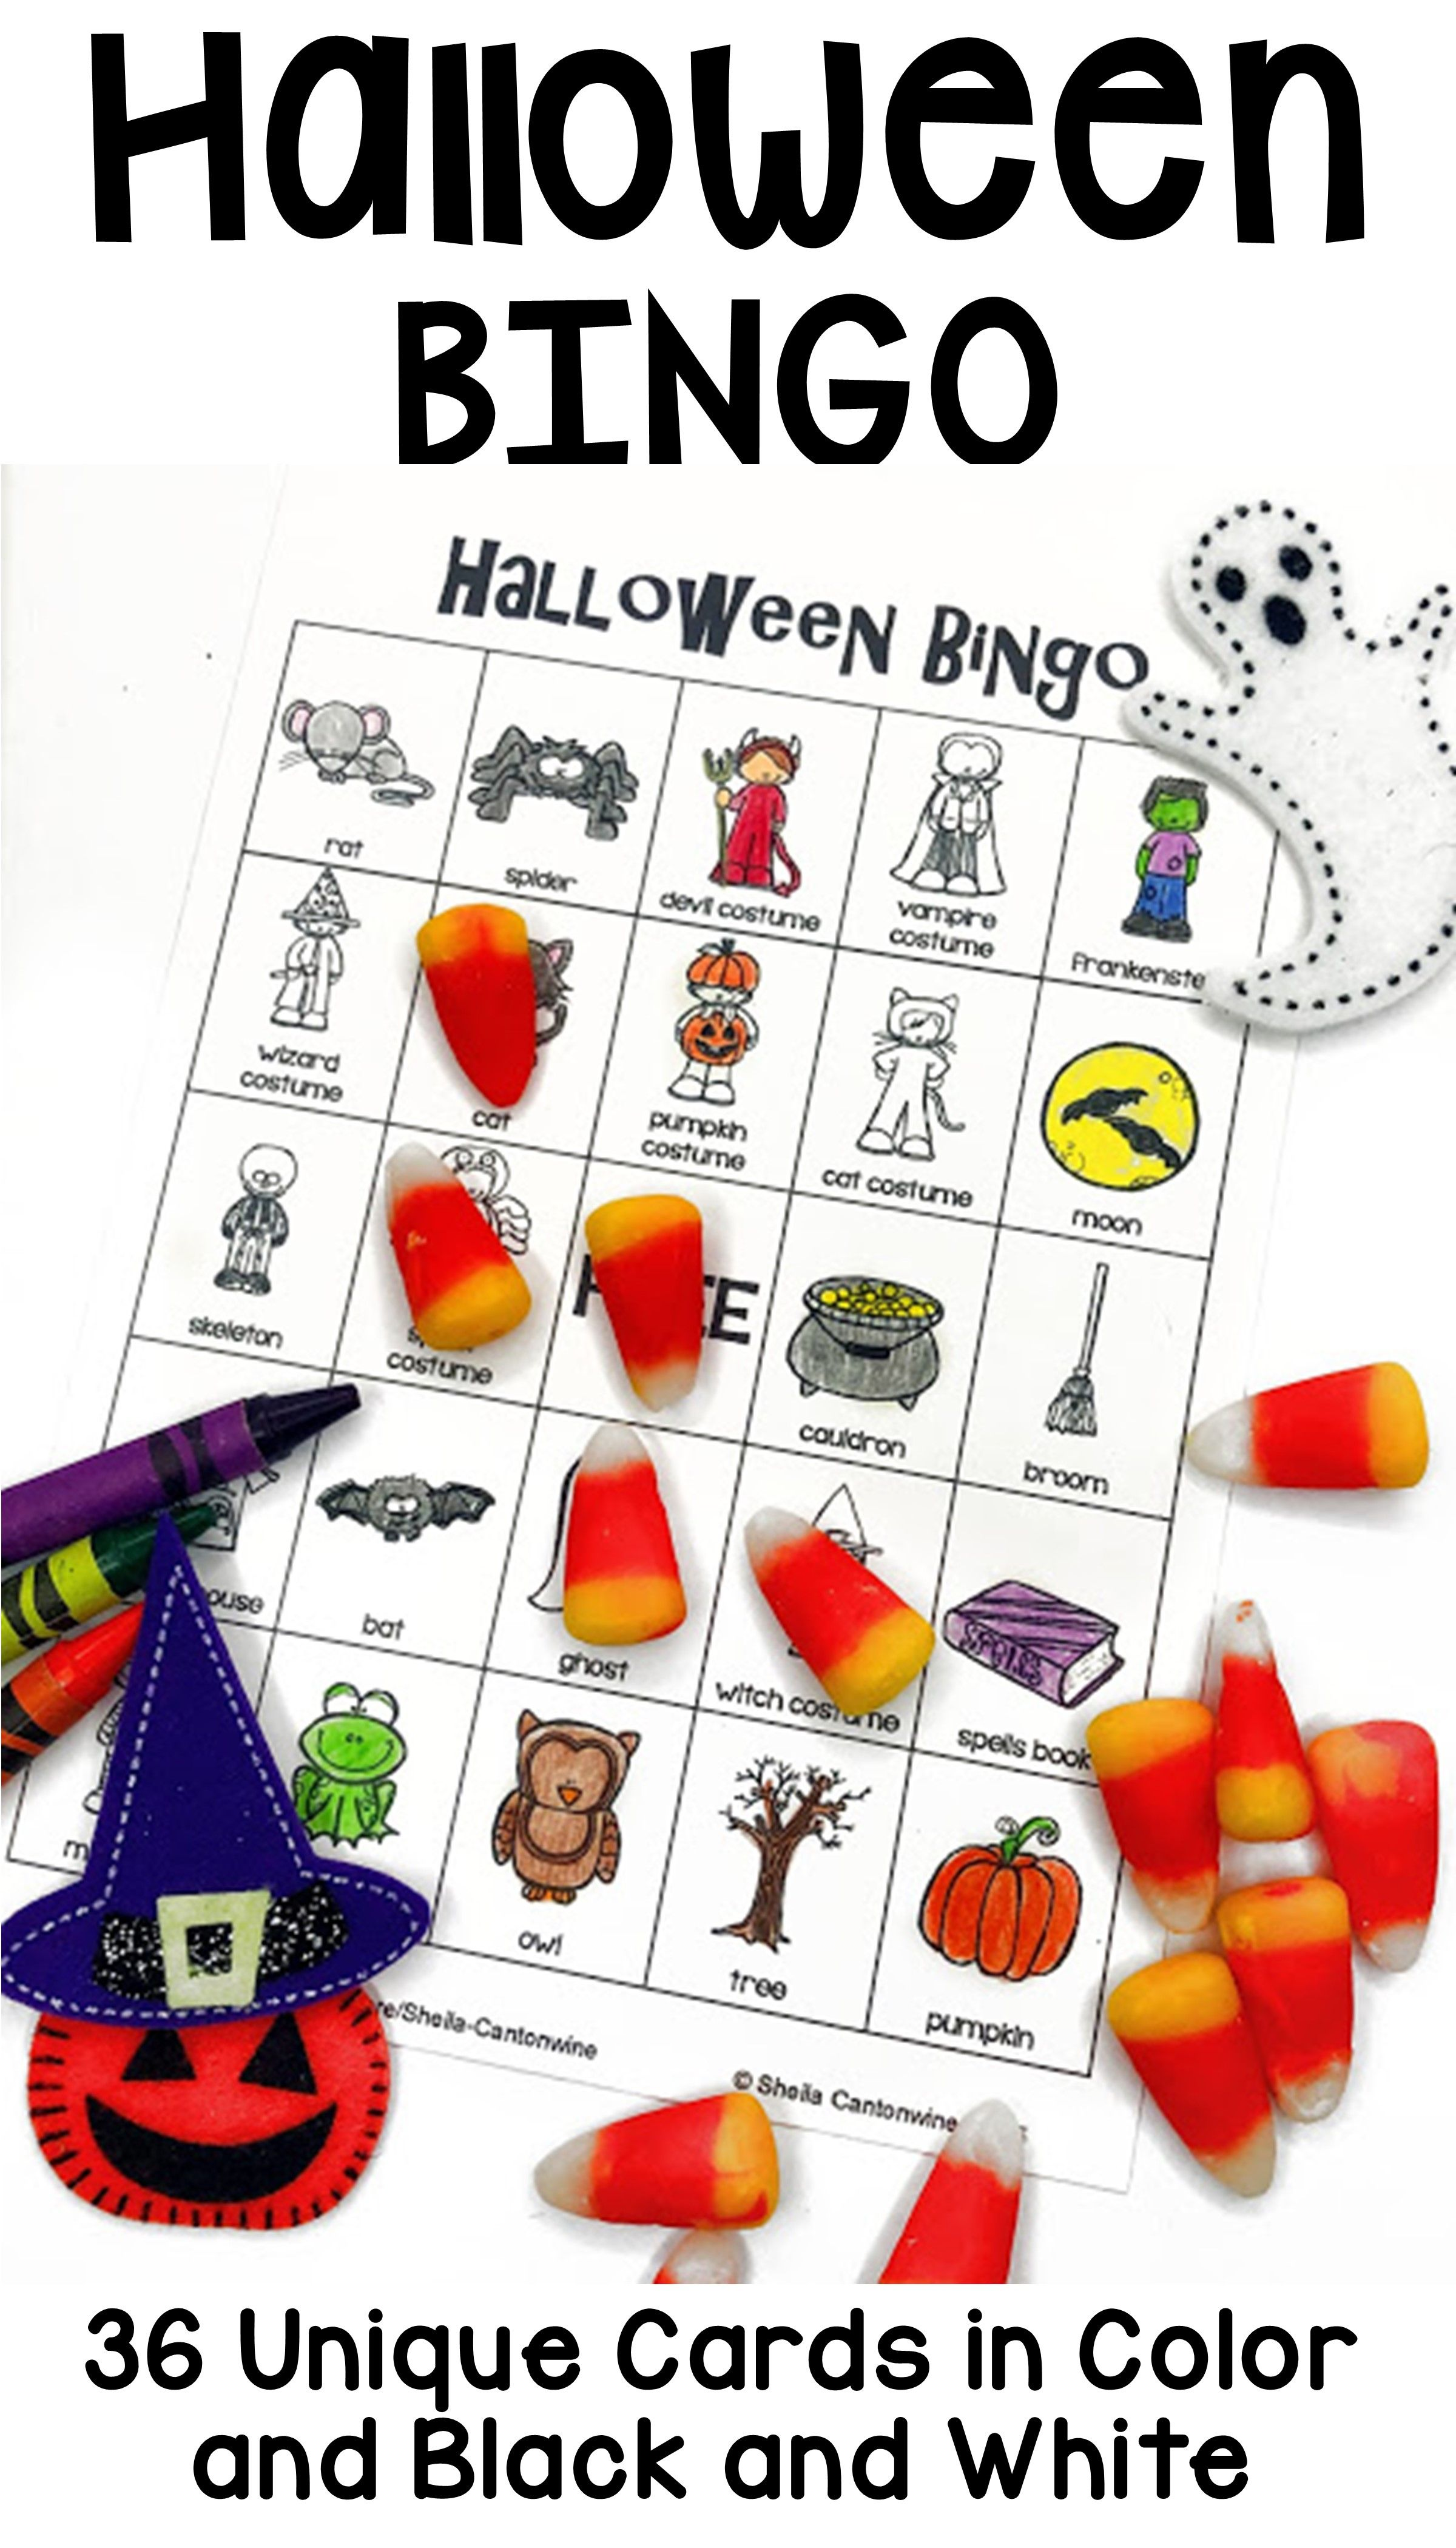 Halloween Bingo With 36 Unique Game Cards In Color And